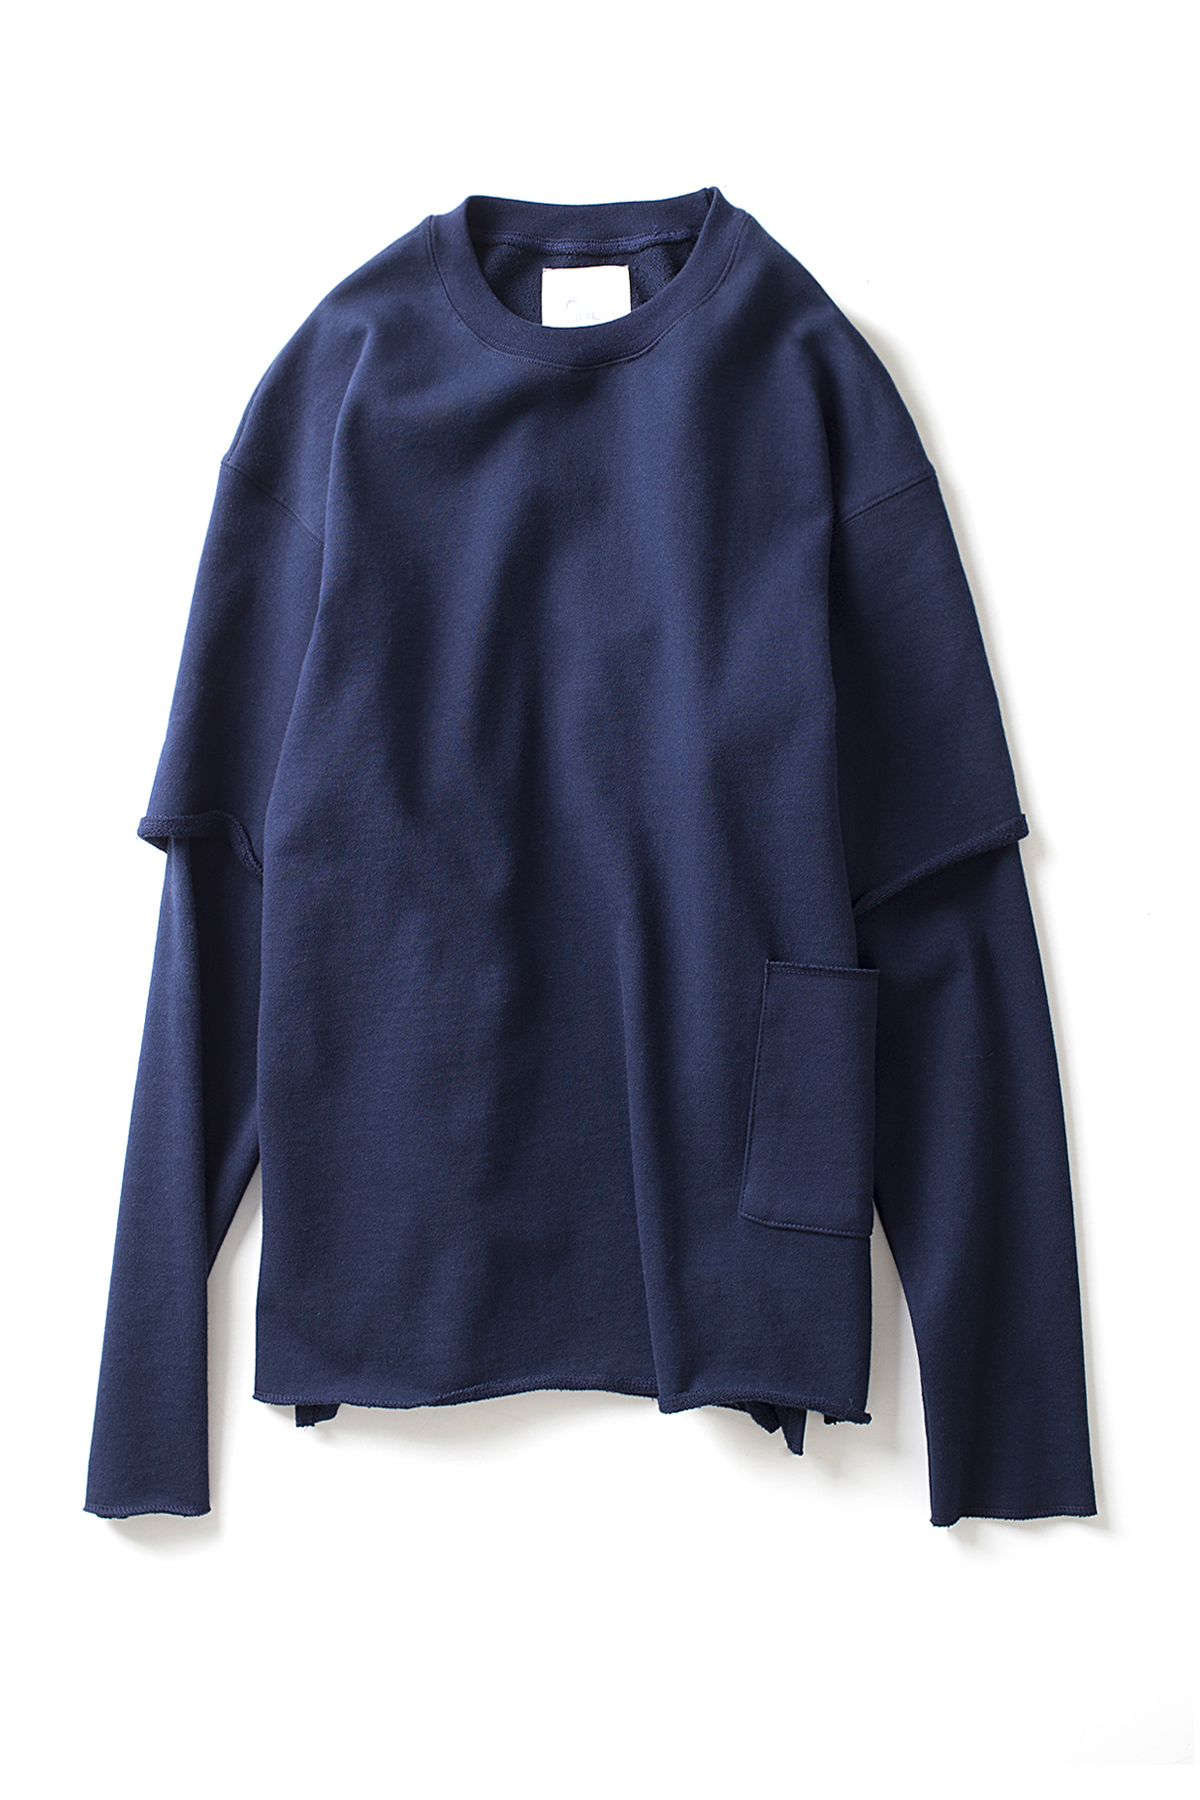 GAKURO : Layered Sleeve Sweatshirt (Navy)